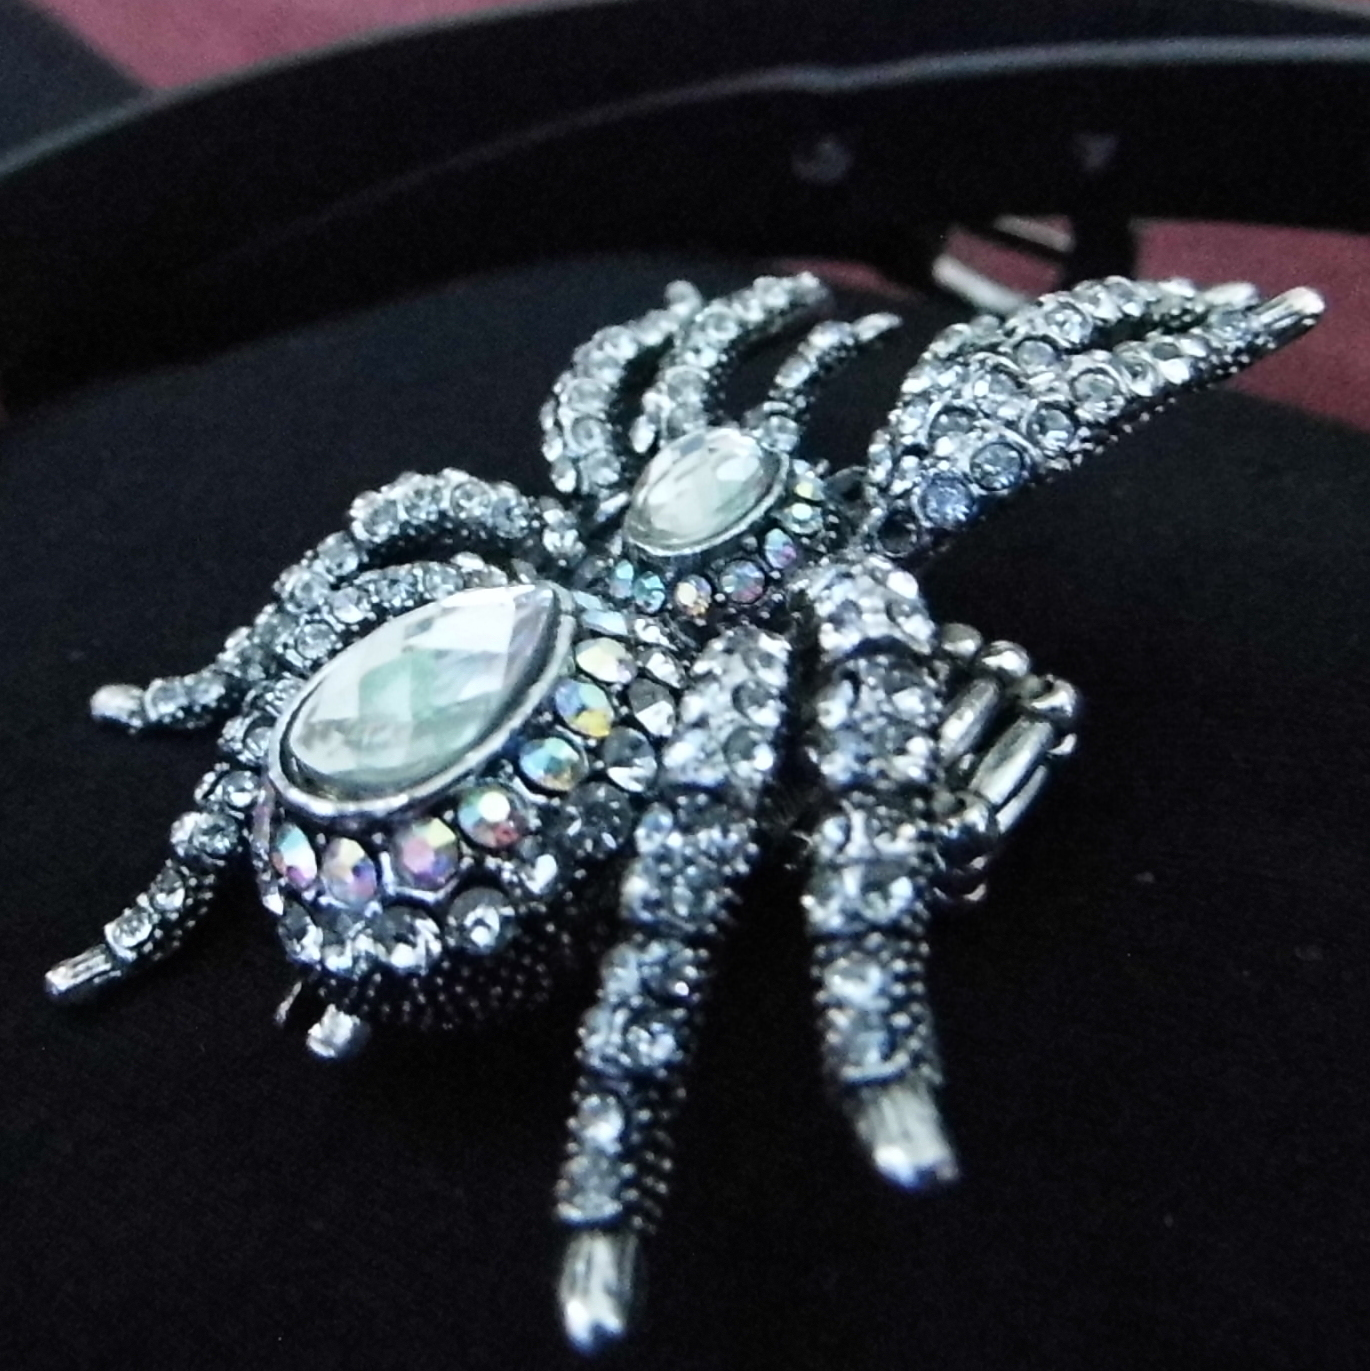 Spider Jewel Ring